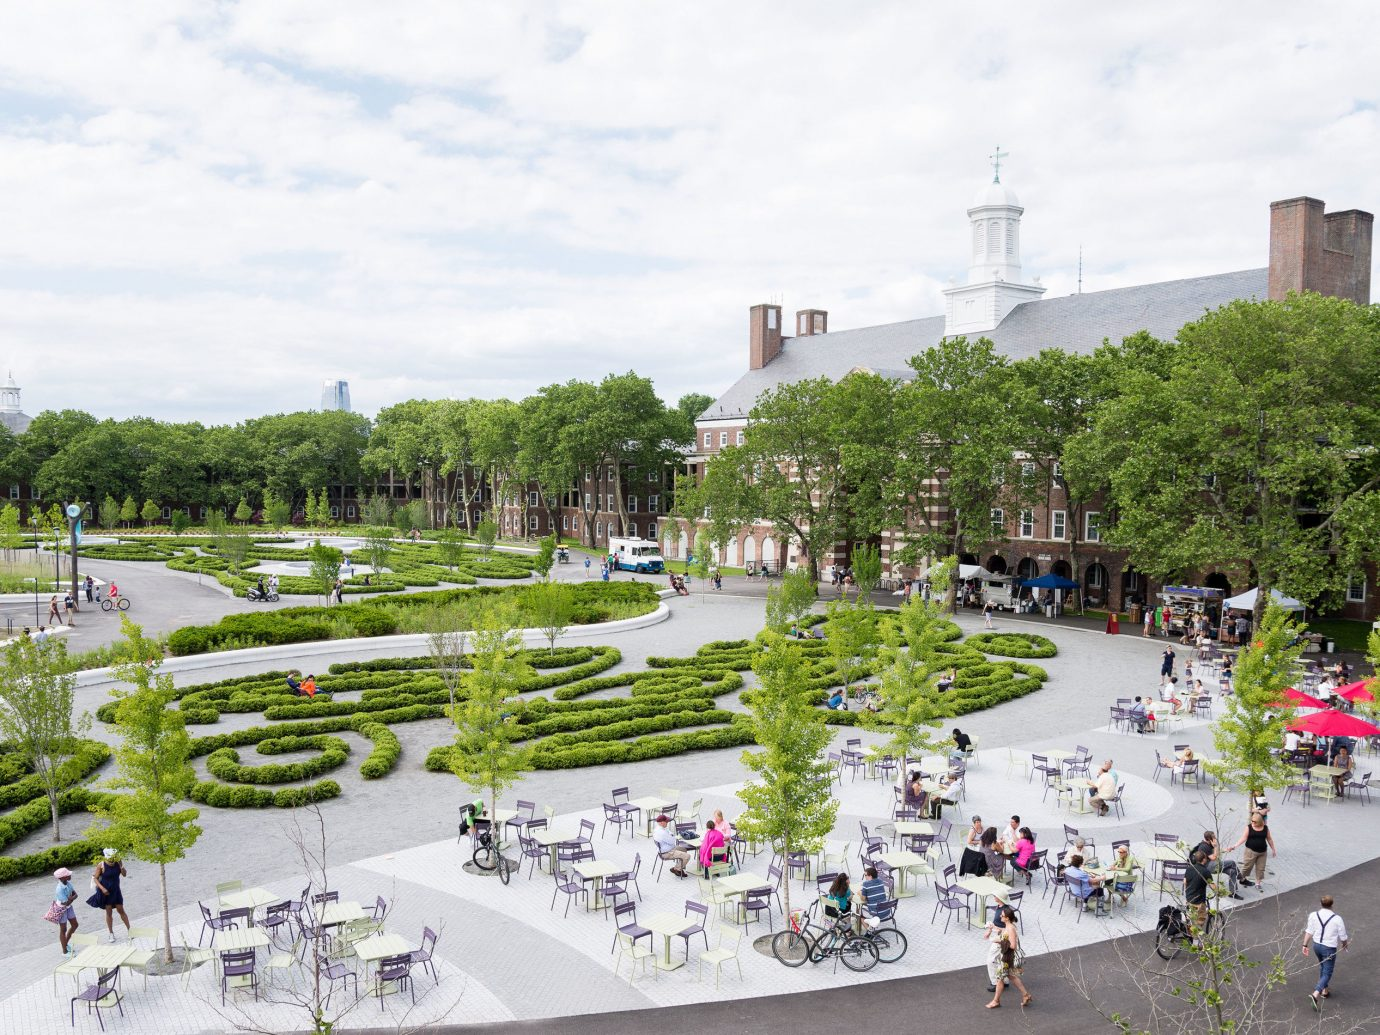 Glamping New York City tree mixed use urban design plant plaza town square recreation Garden outdoor structure park grass